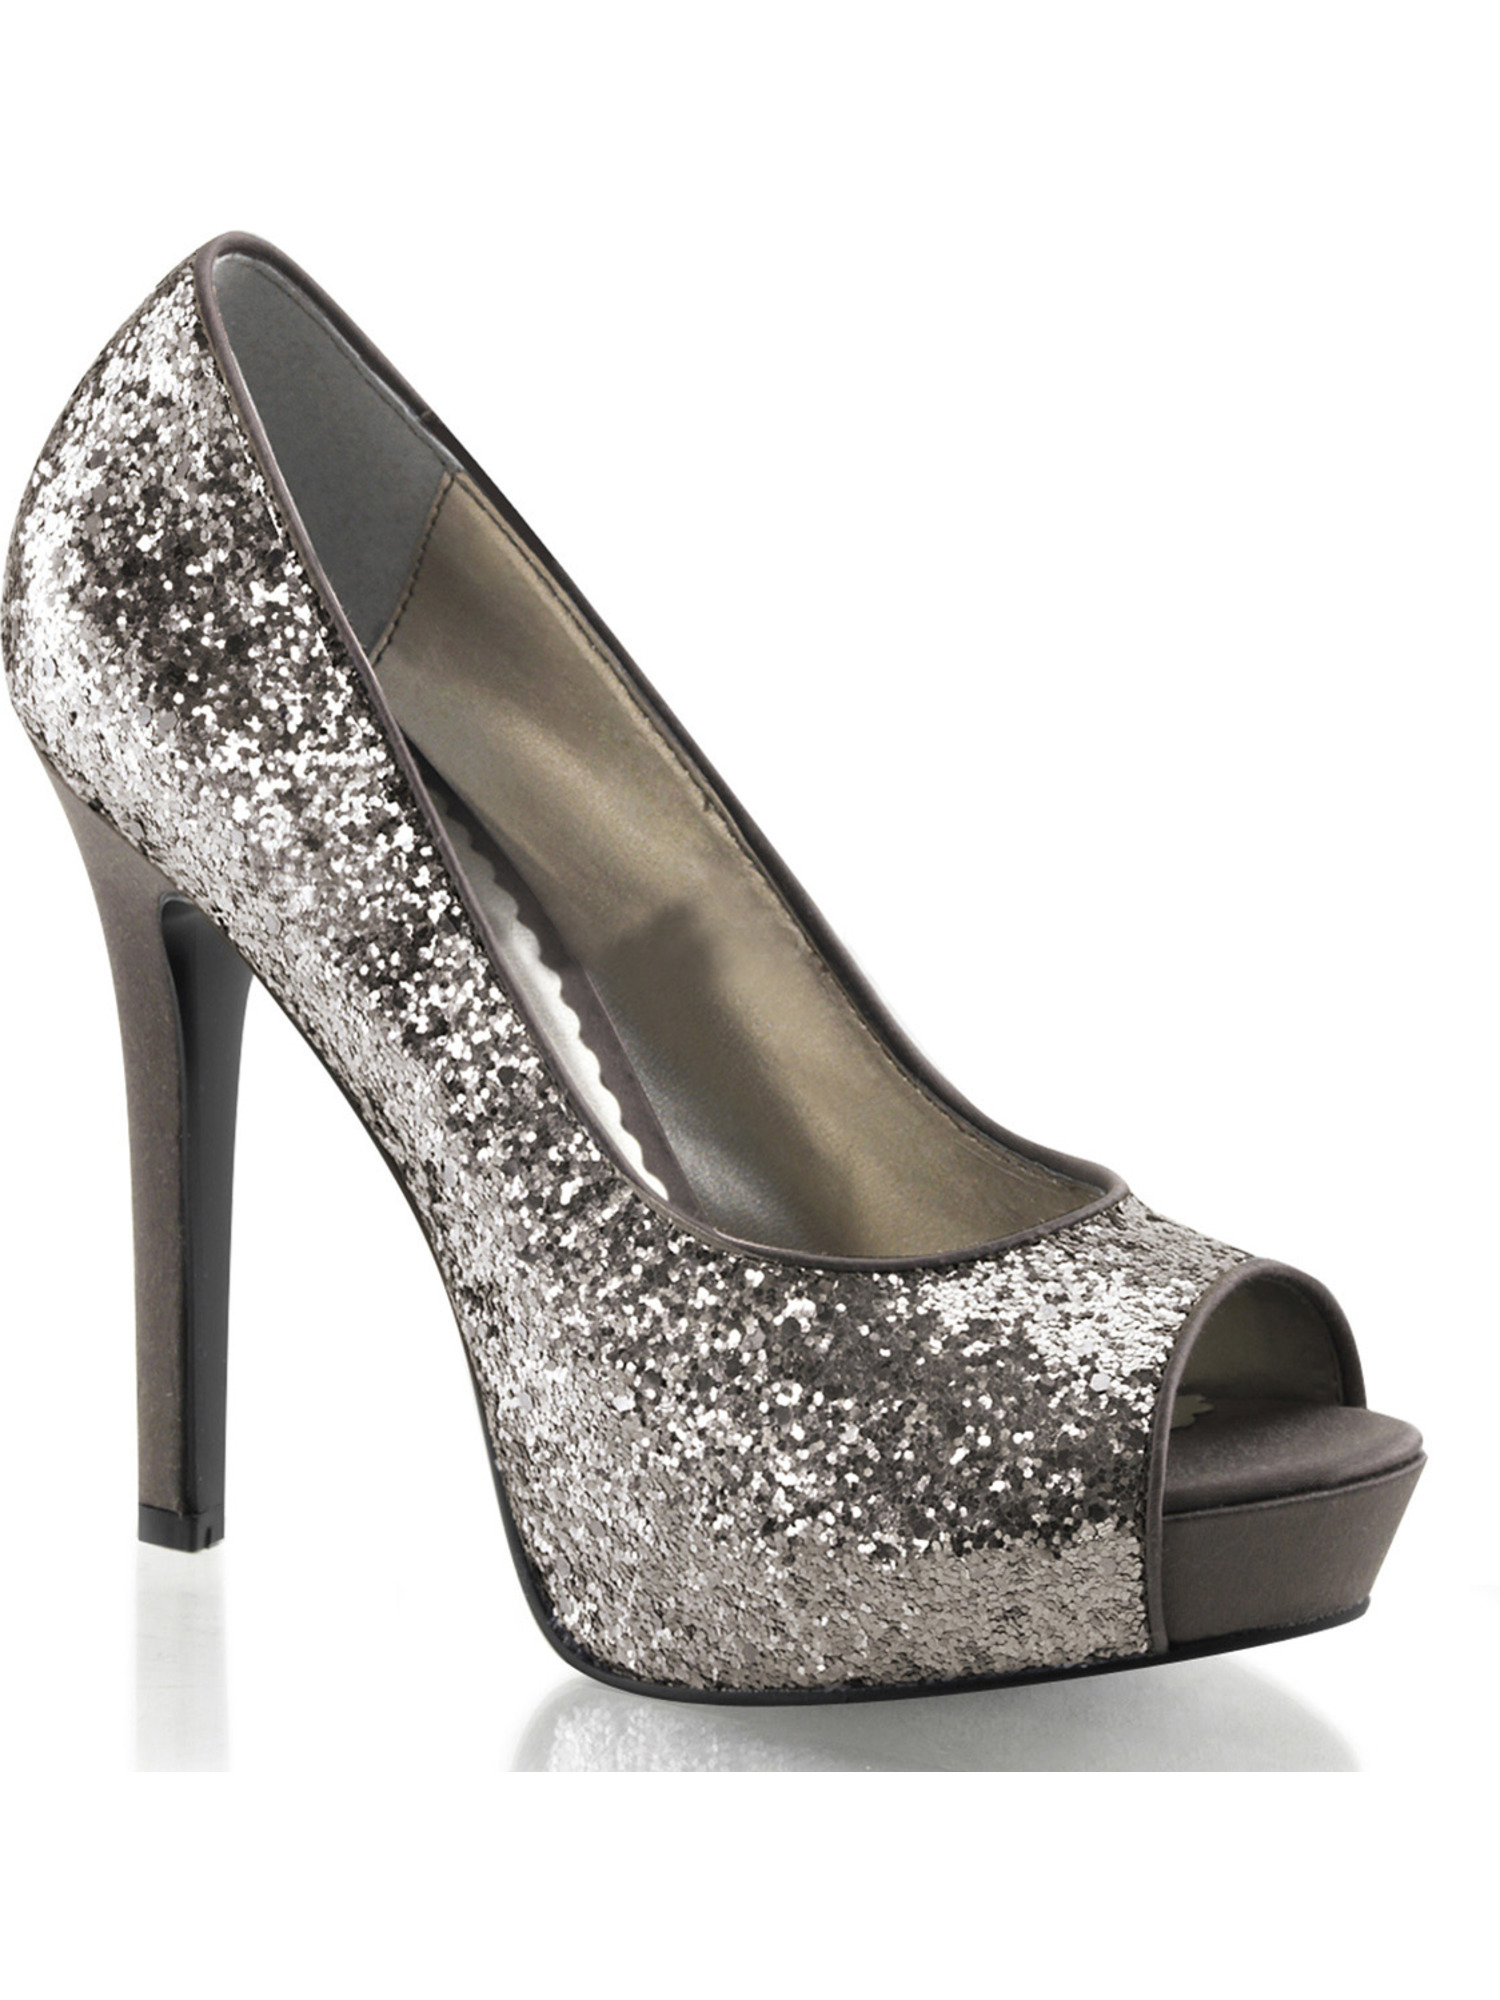 952b09aa4095a Womens Charcoal Silver Grey Glitter Peep Toe Pumps Shoes with 4.75 Inch  High Heel Size 6